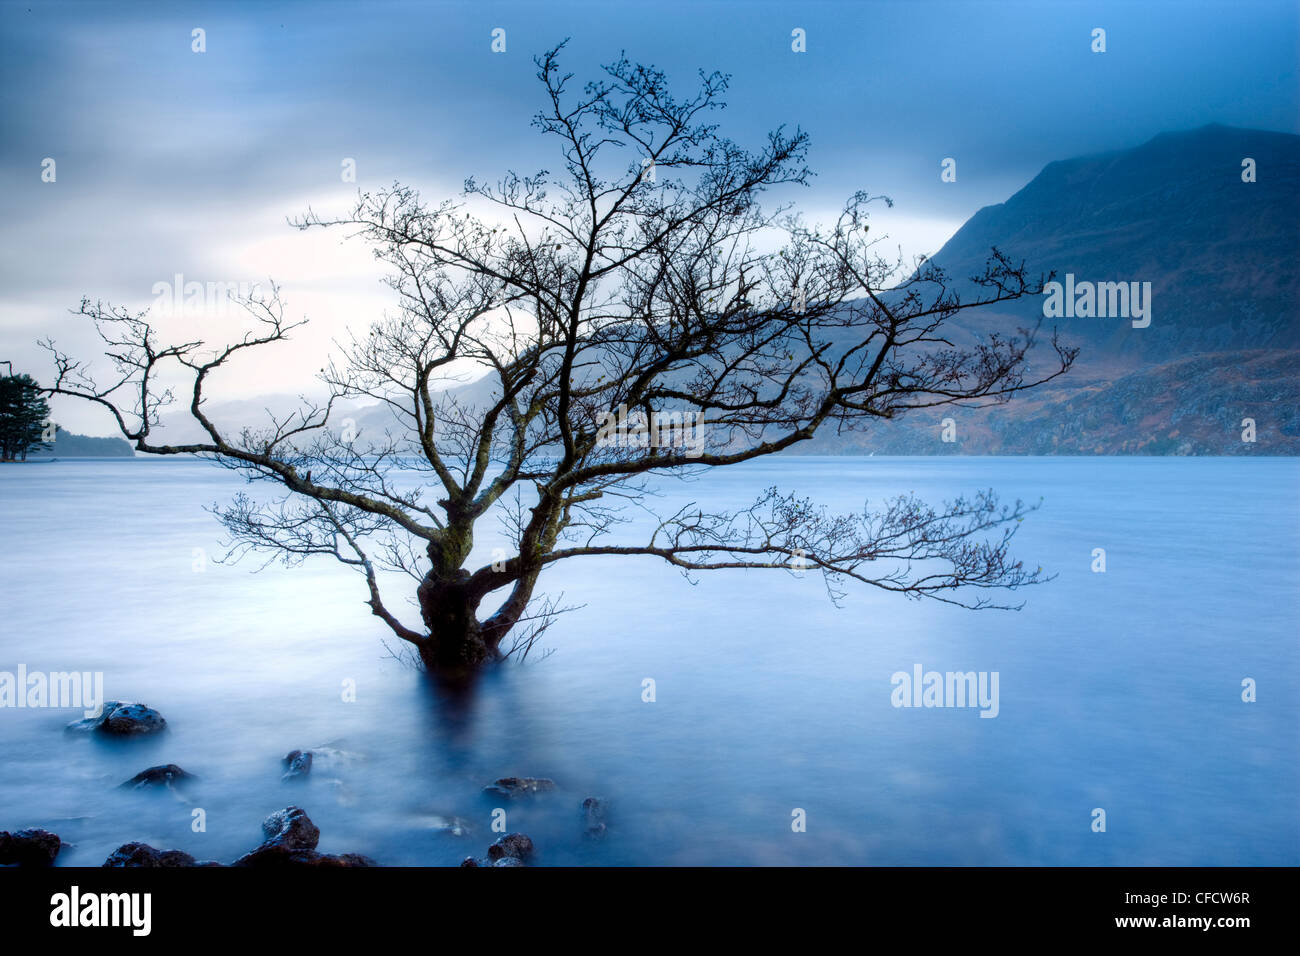 Partially submerged tree in Loch Maree on a stormy day, near Poolewe, Achnasheen, Wester Ross, Highlands, Scotland, - Stock Image